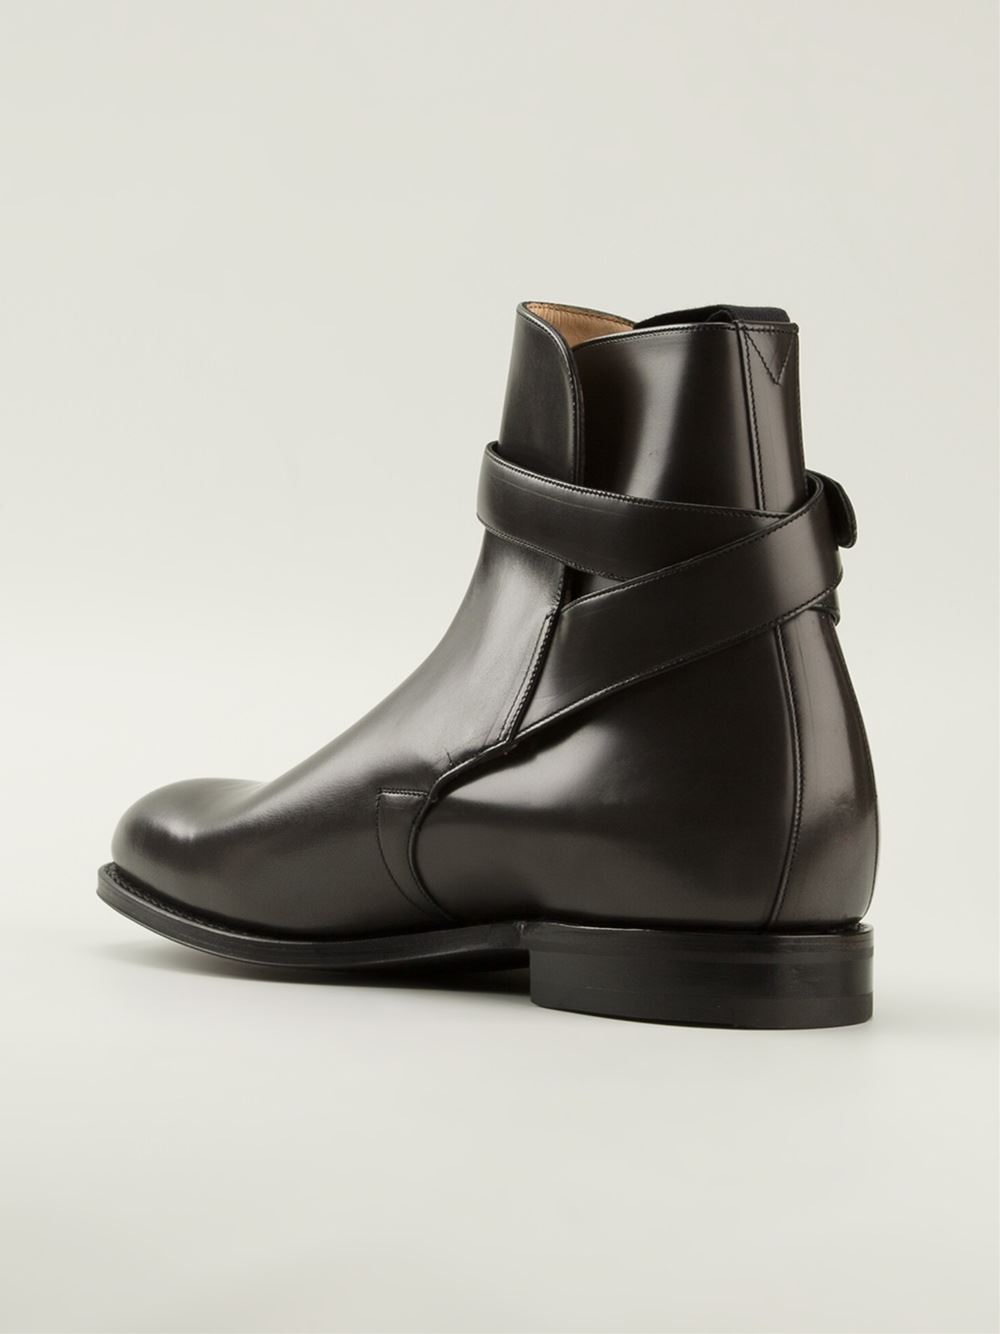 Church S Bcukle Strap Ankle Boots In Black For Men Lyst